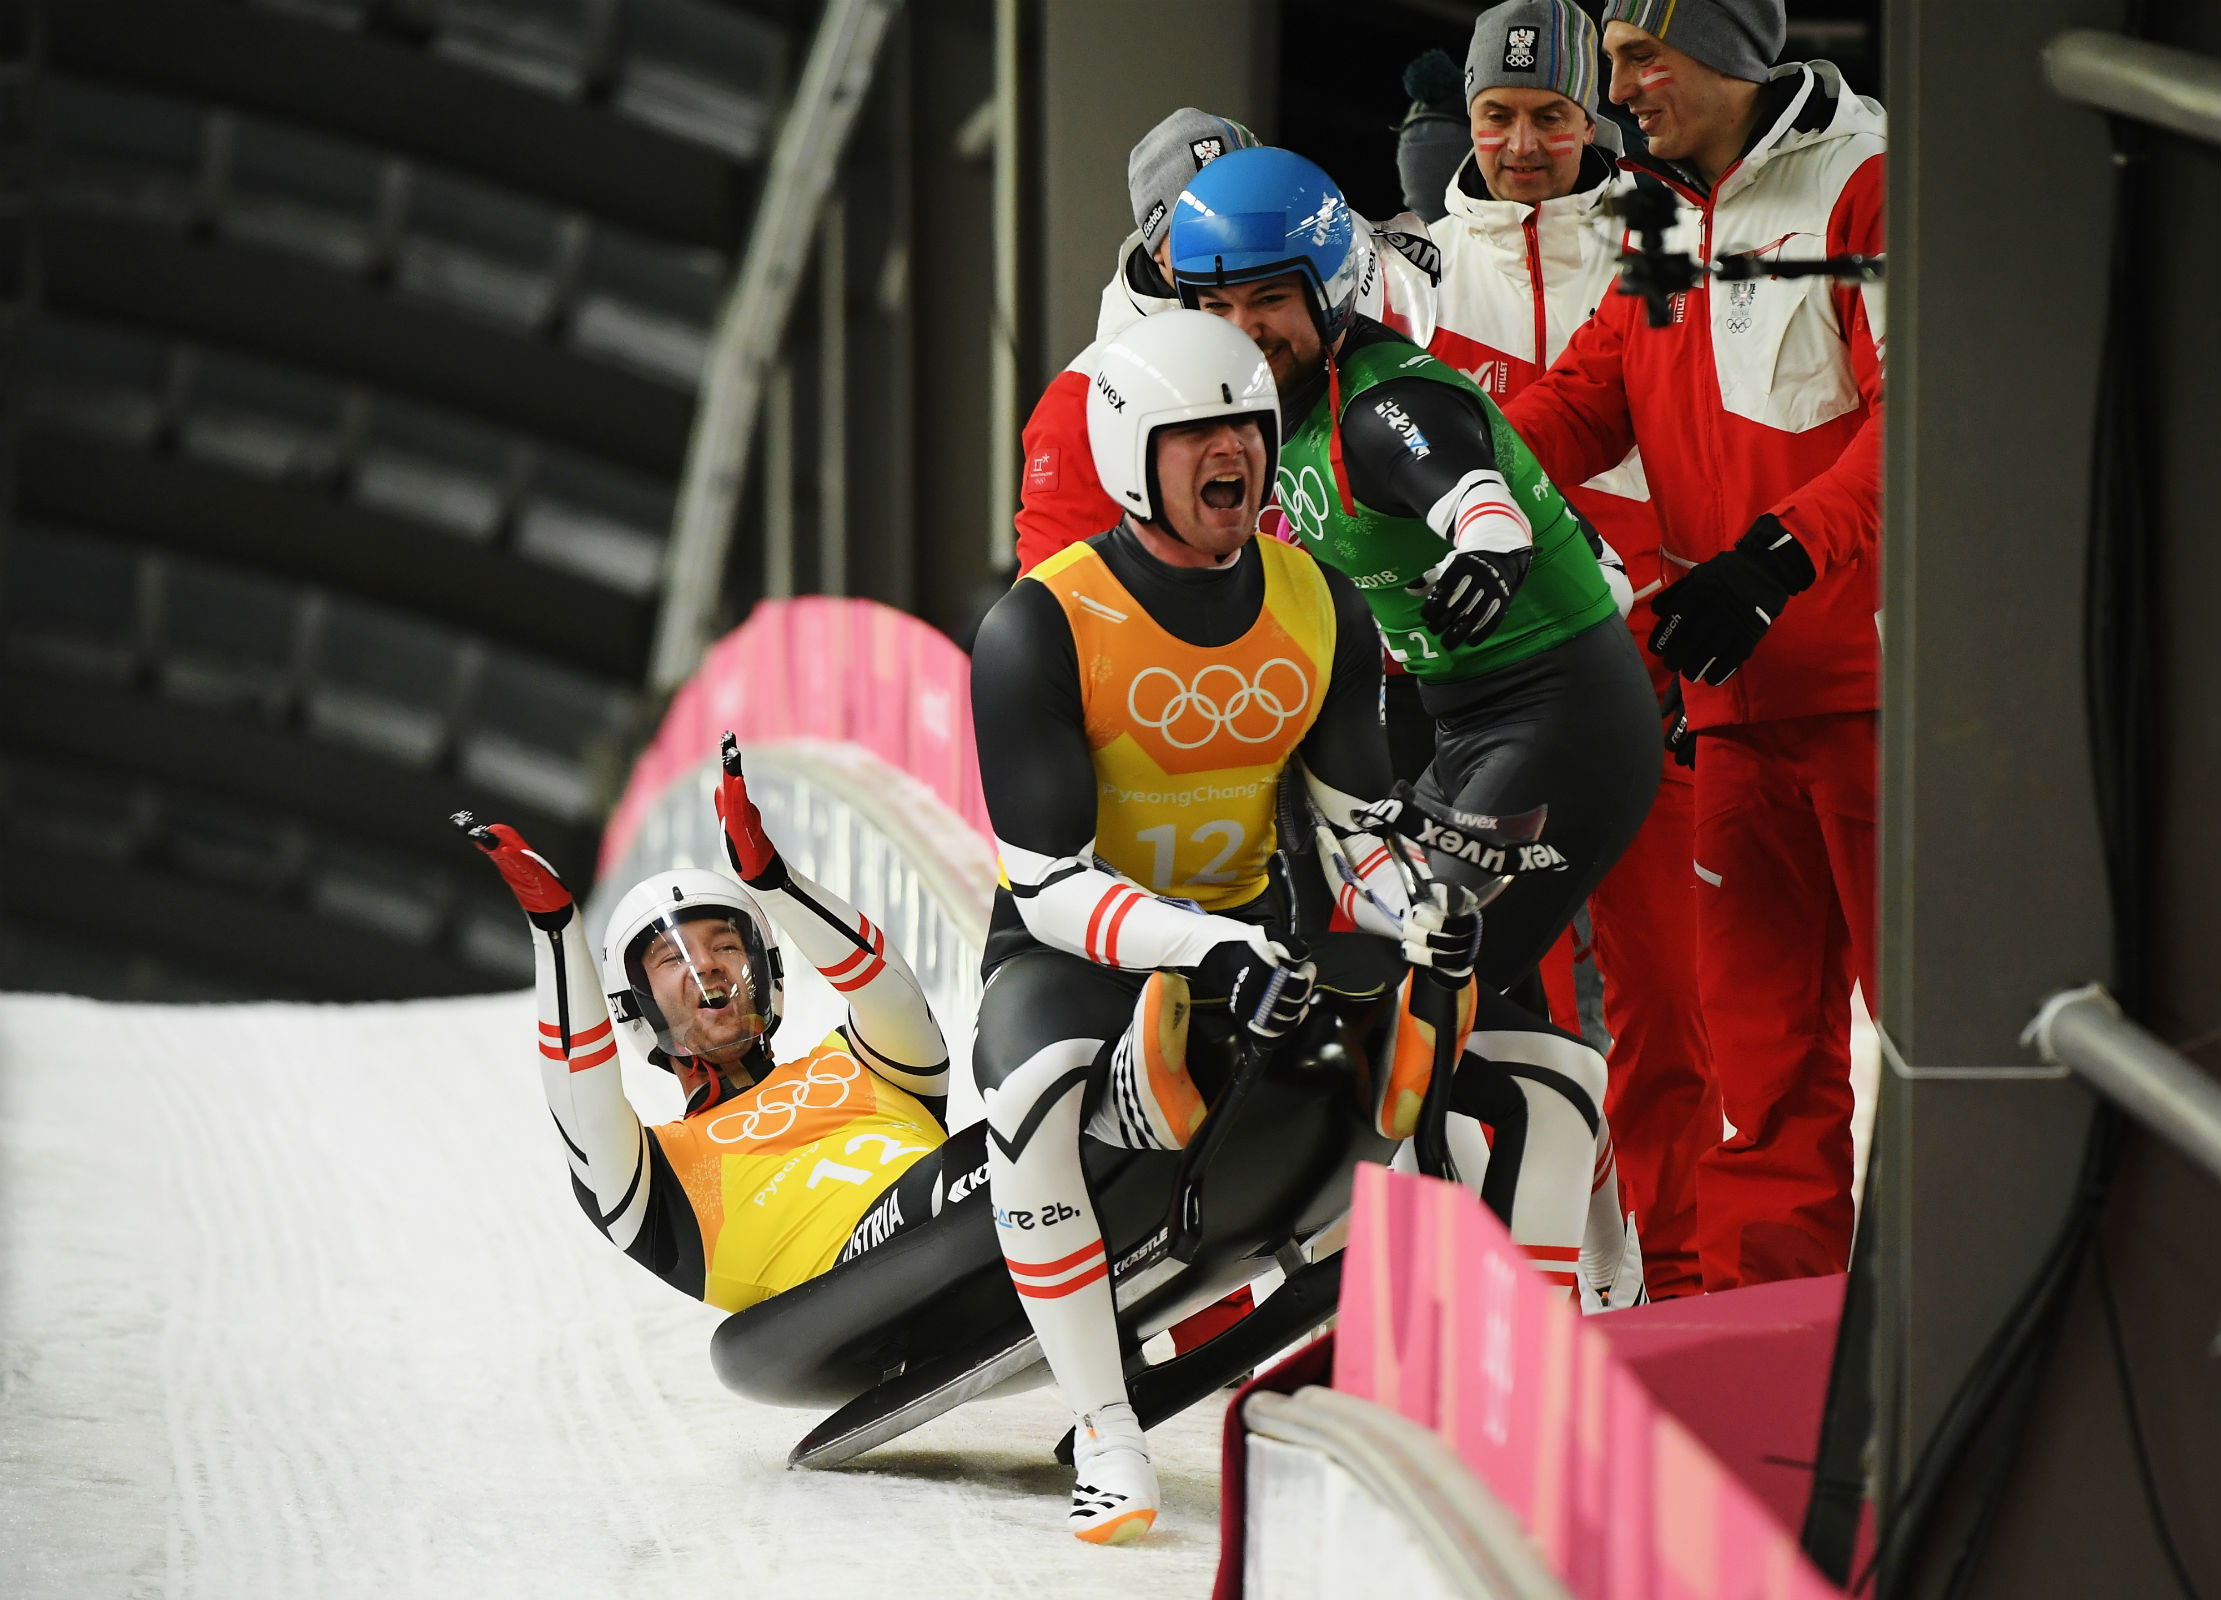 Luge - Team Relay